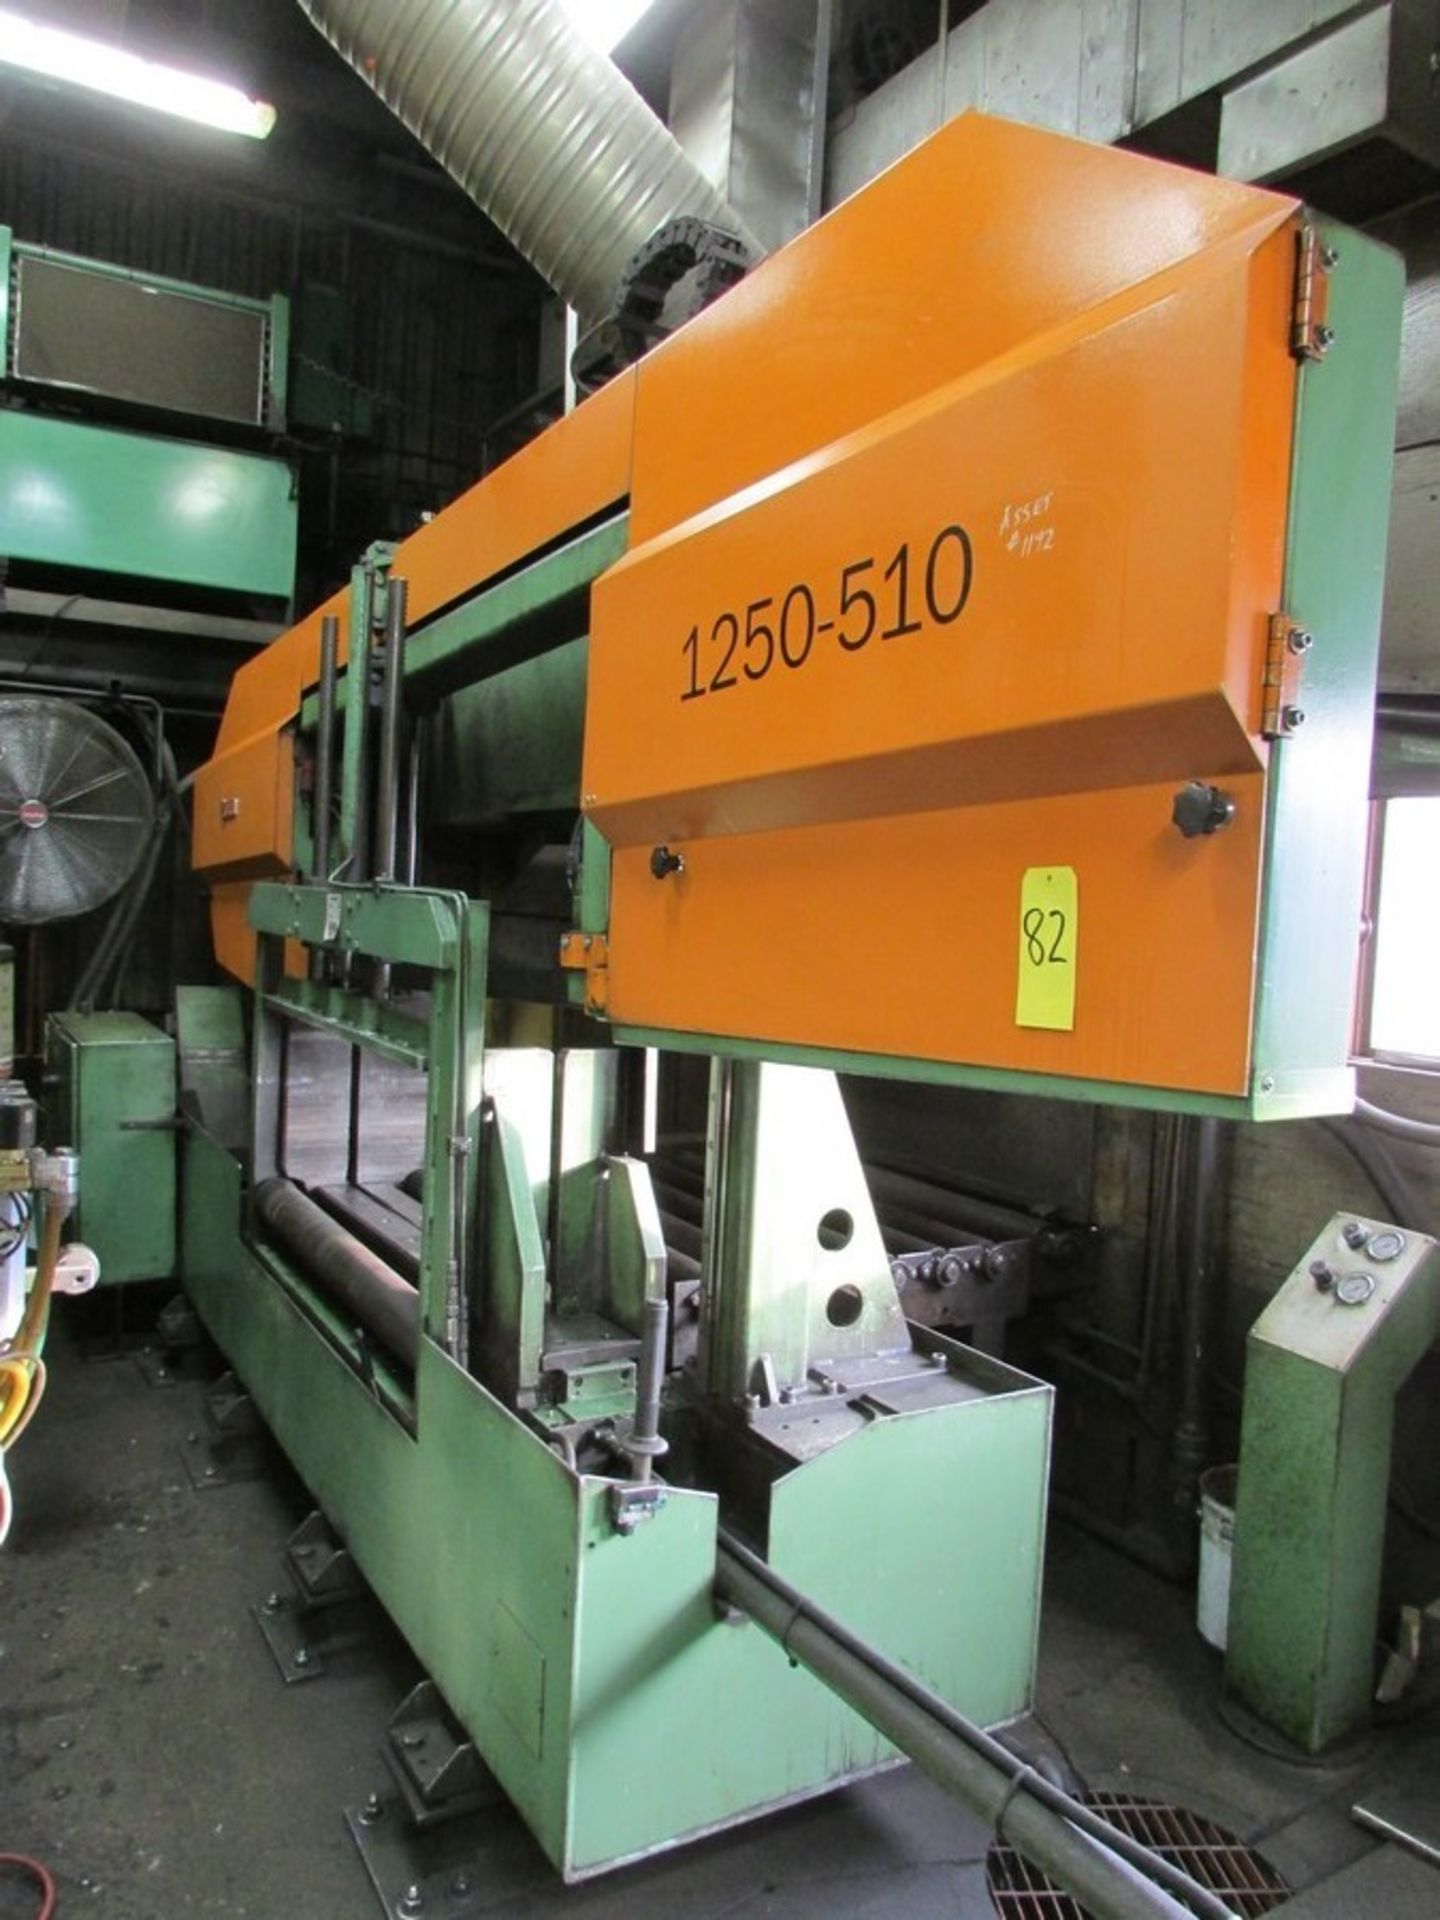 Lot 82 - 2008 Peddinghaus 1250-510 Horizontal Band Saw s/n 18085 w/ Hyd. Clamping and c/w 4 unused saw blades